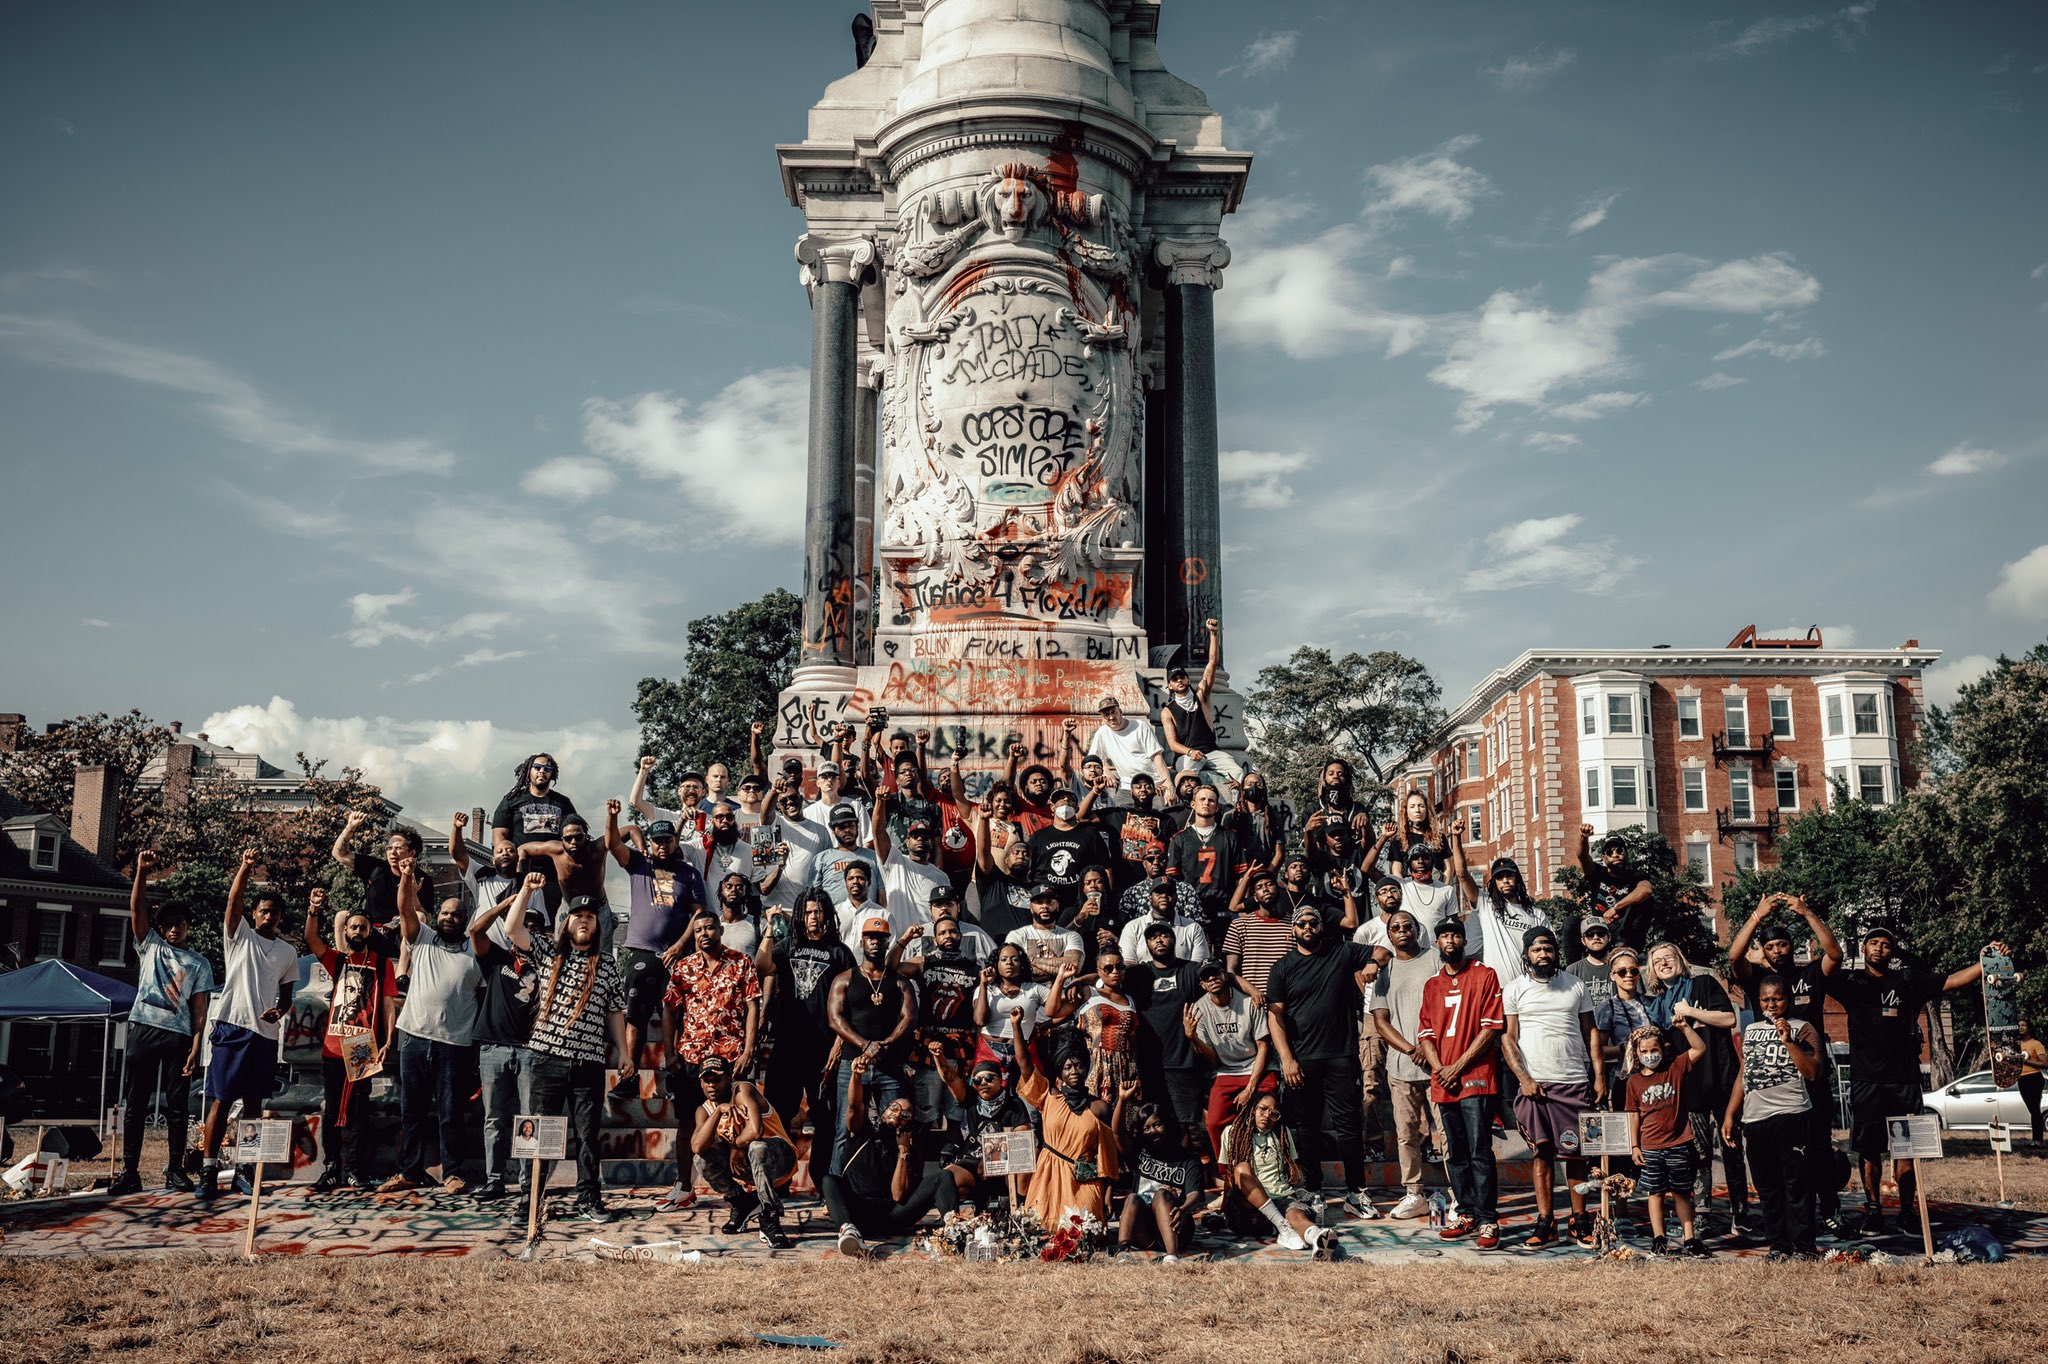 Protestors stand in front of the Lee Monument in June 2020